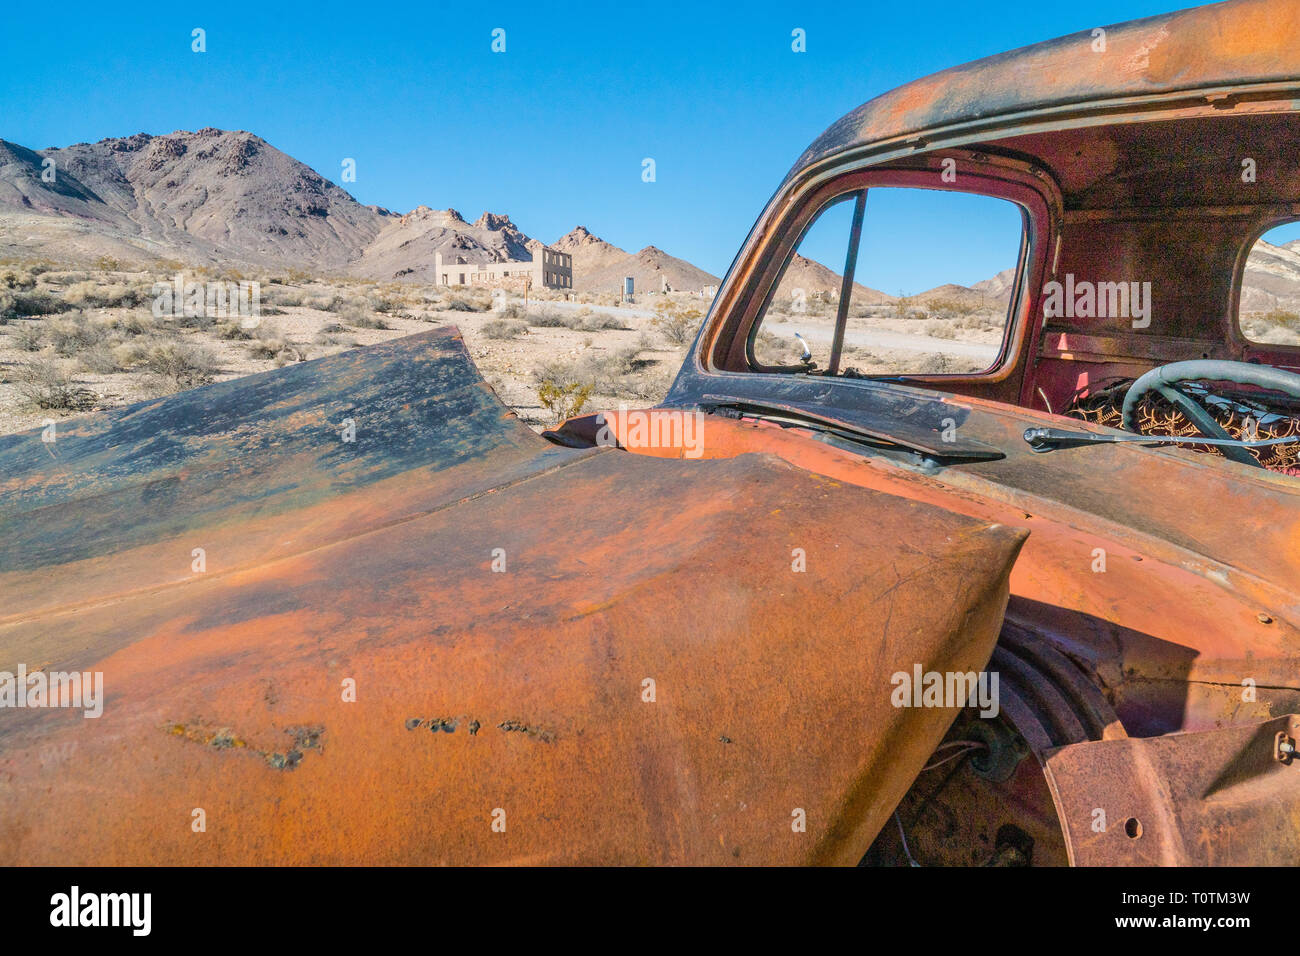 Wrecked Truck Stock Photos & Wrecked Truck Stock Images - Alamy